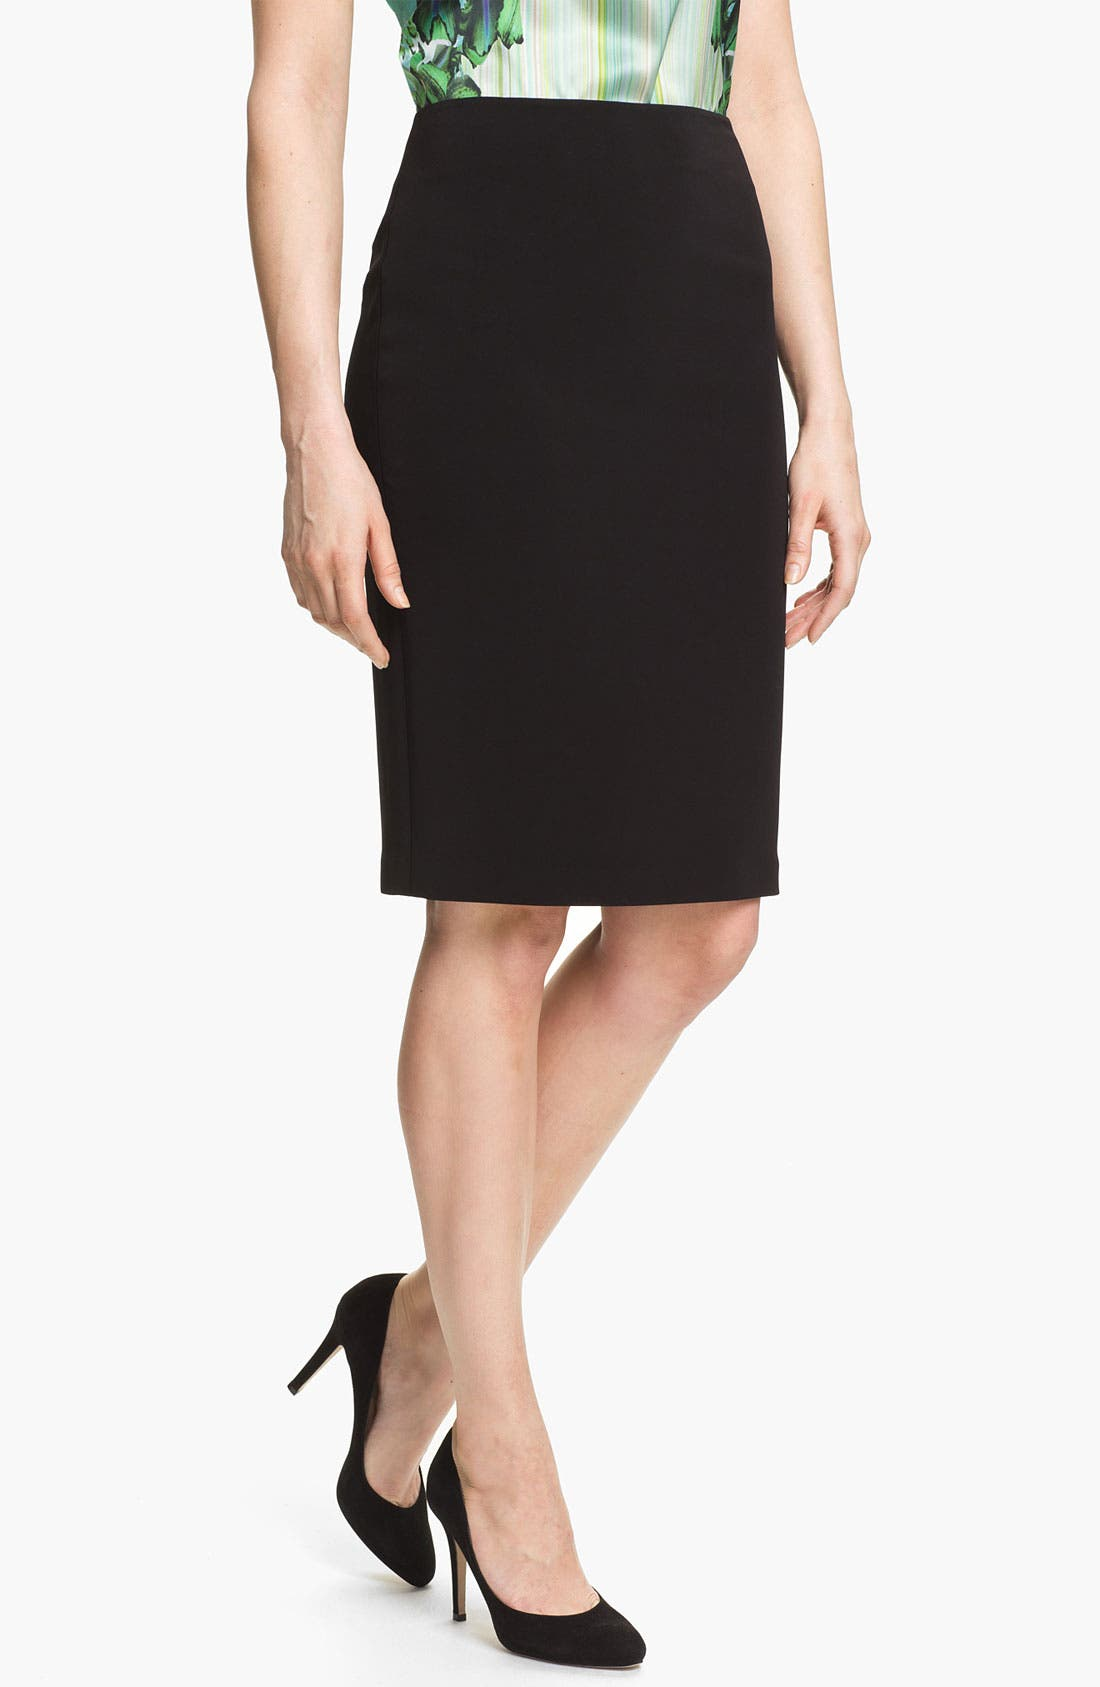 Alternate Image 1 Selected - Elie Tahari 'Penelope - Luxe Crepe' Skirt